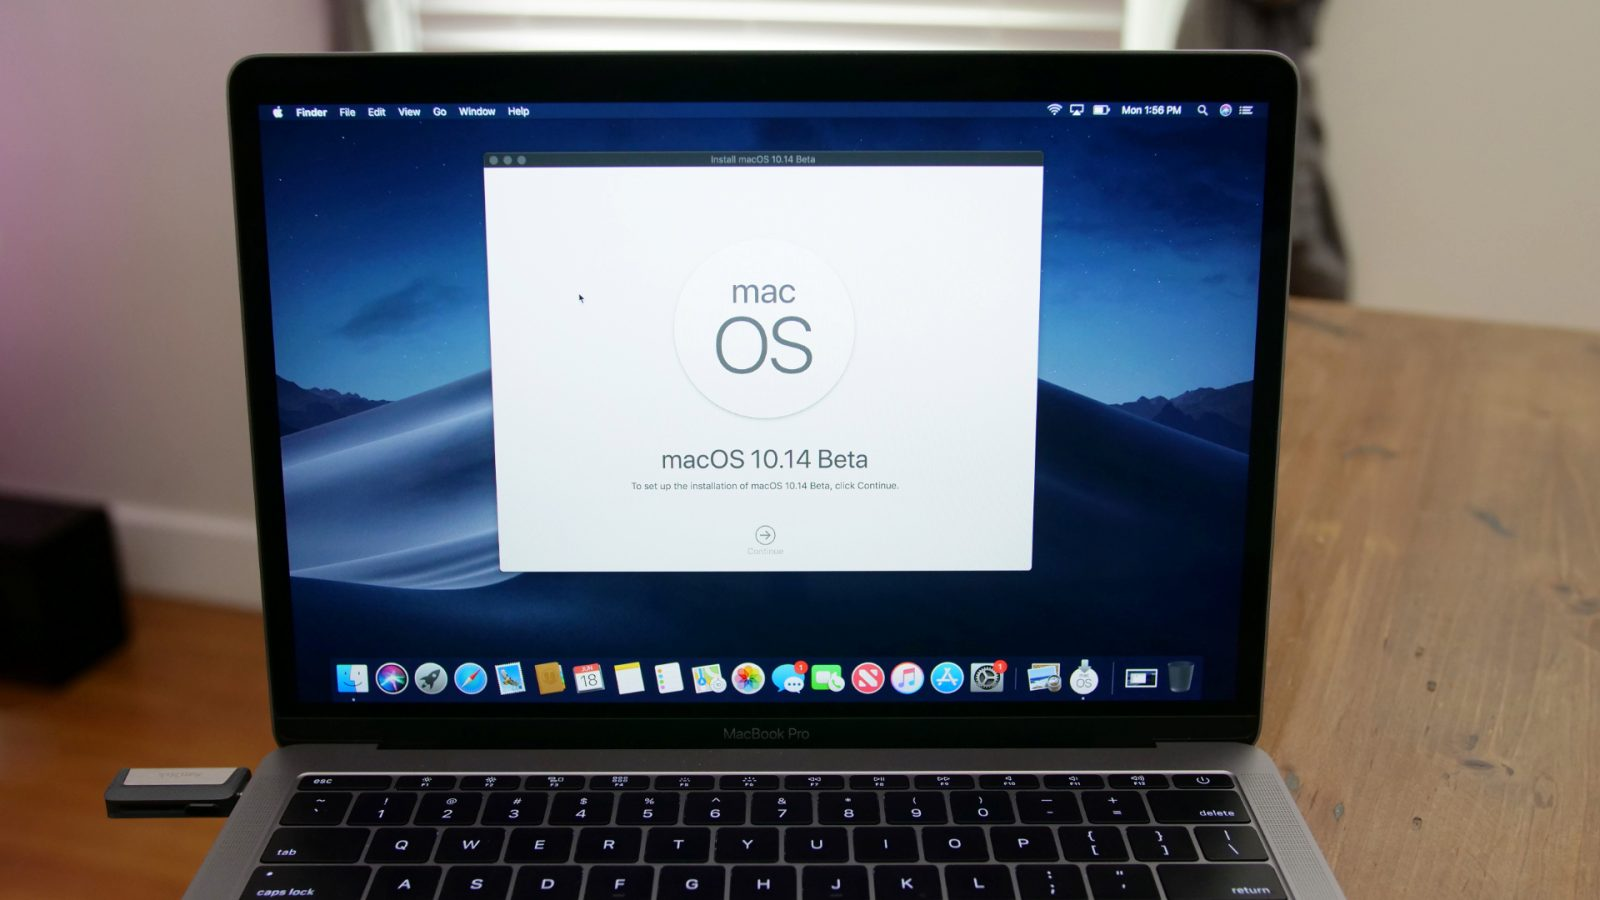 Install Mac OS for Macbook in Da Nang VN